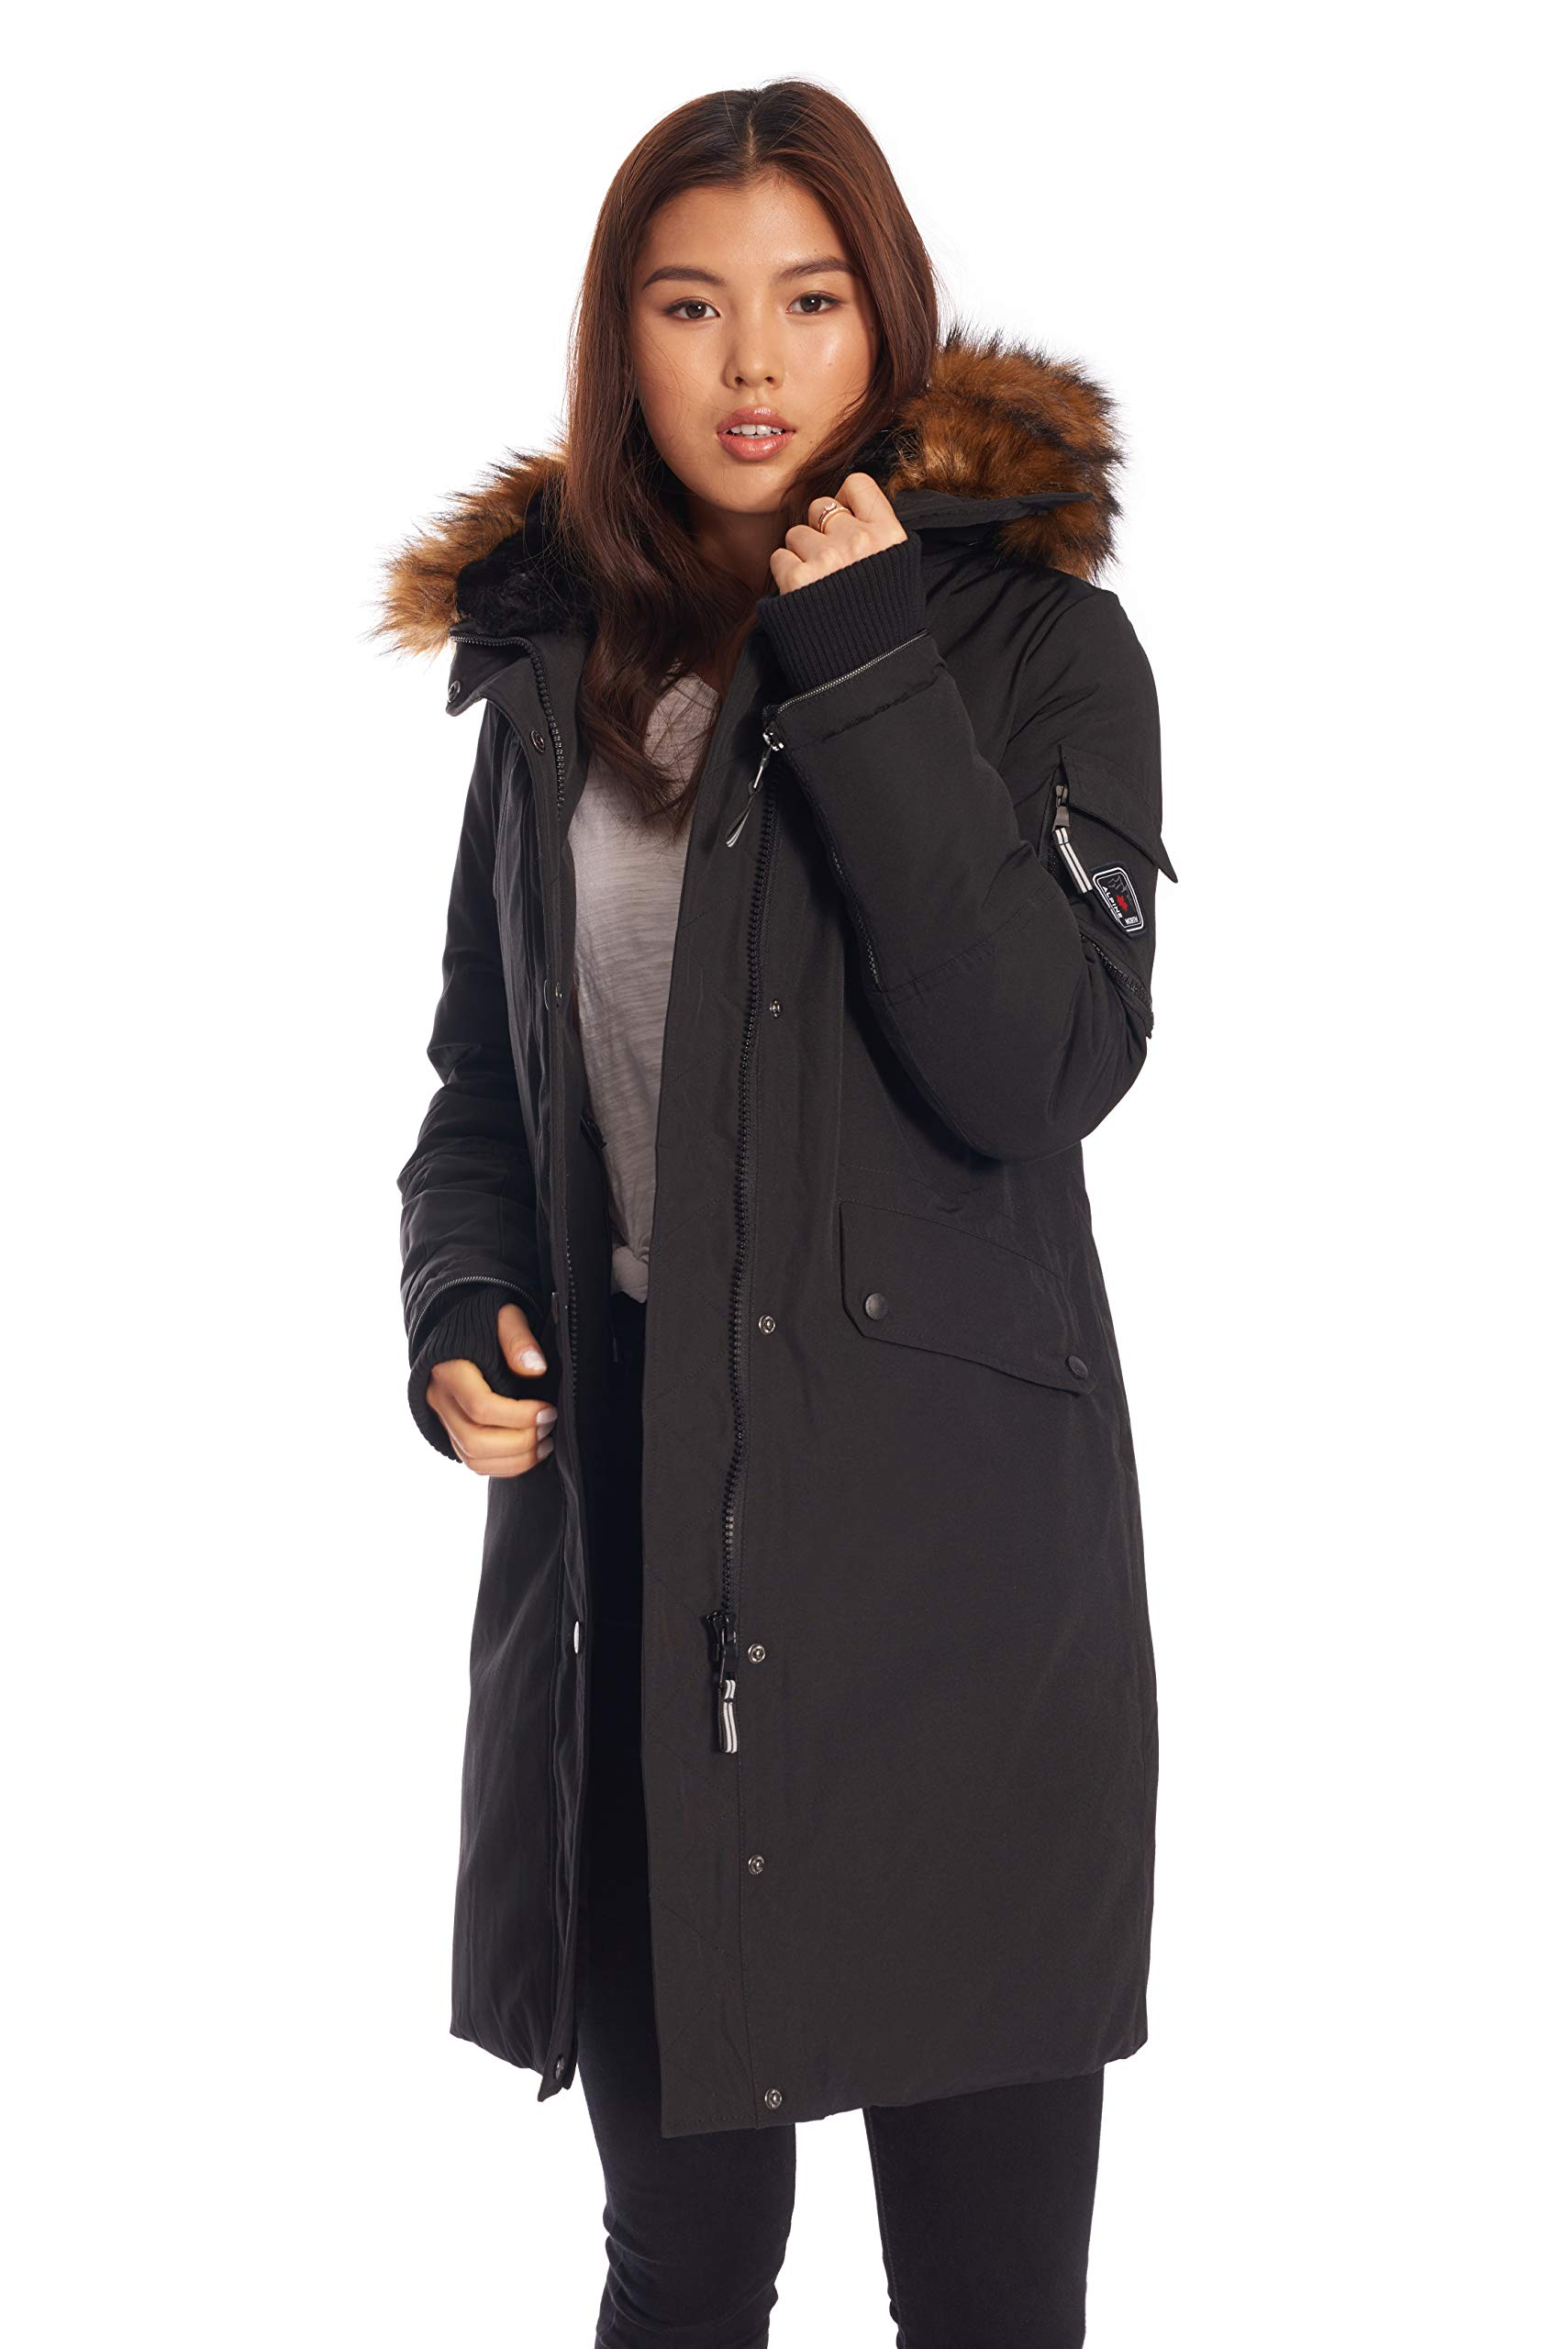 Alpine-North-Womens-Vegan-Down-Long-Parka-Winter-Jacket